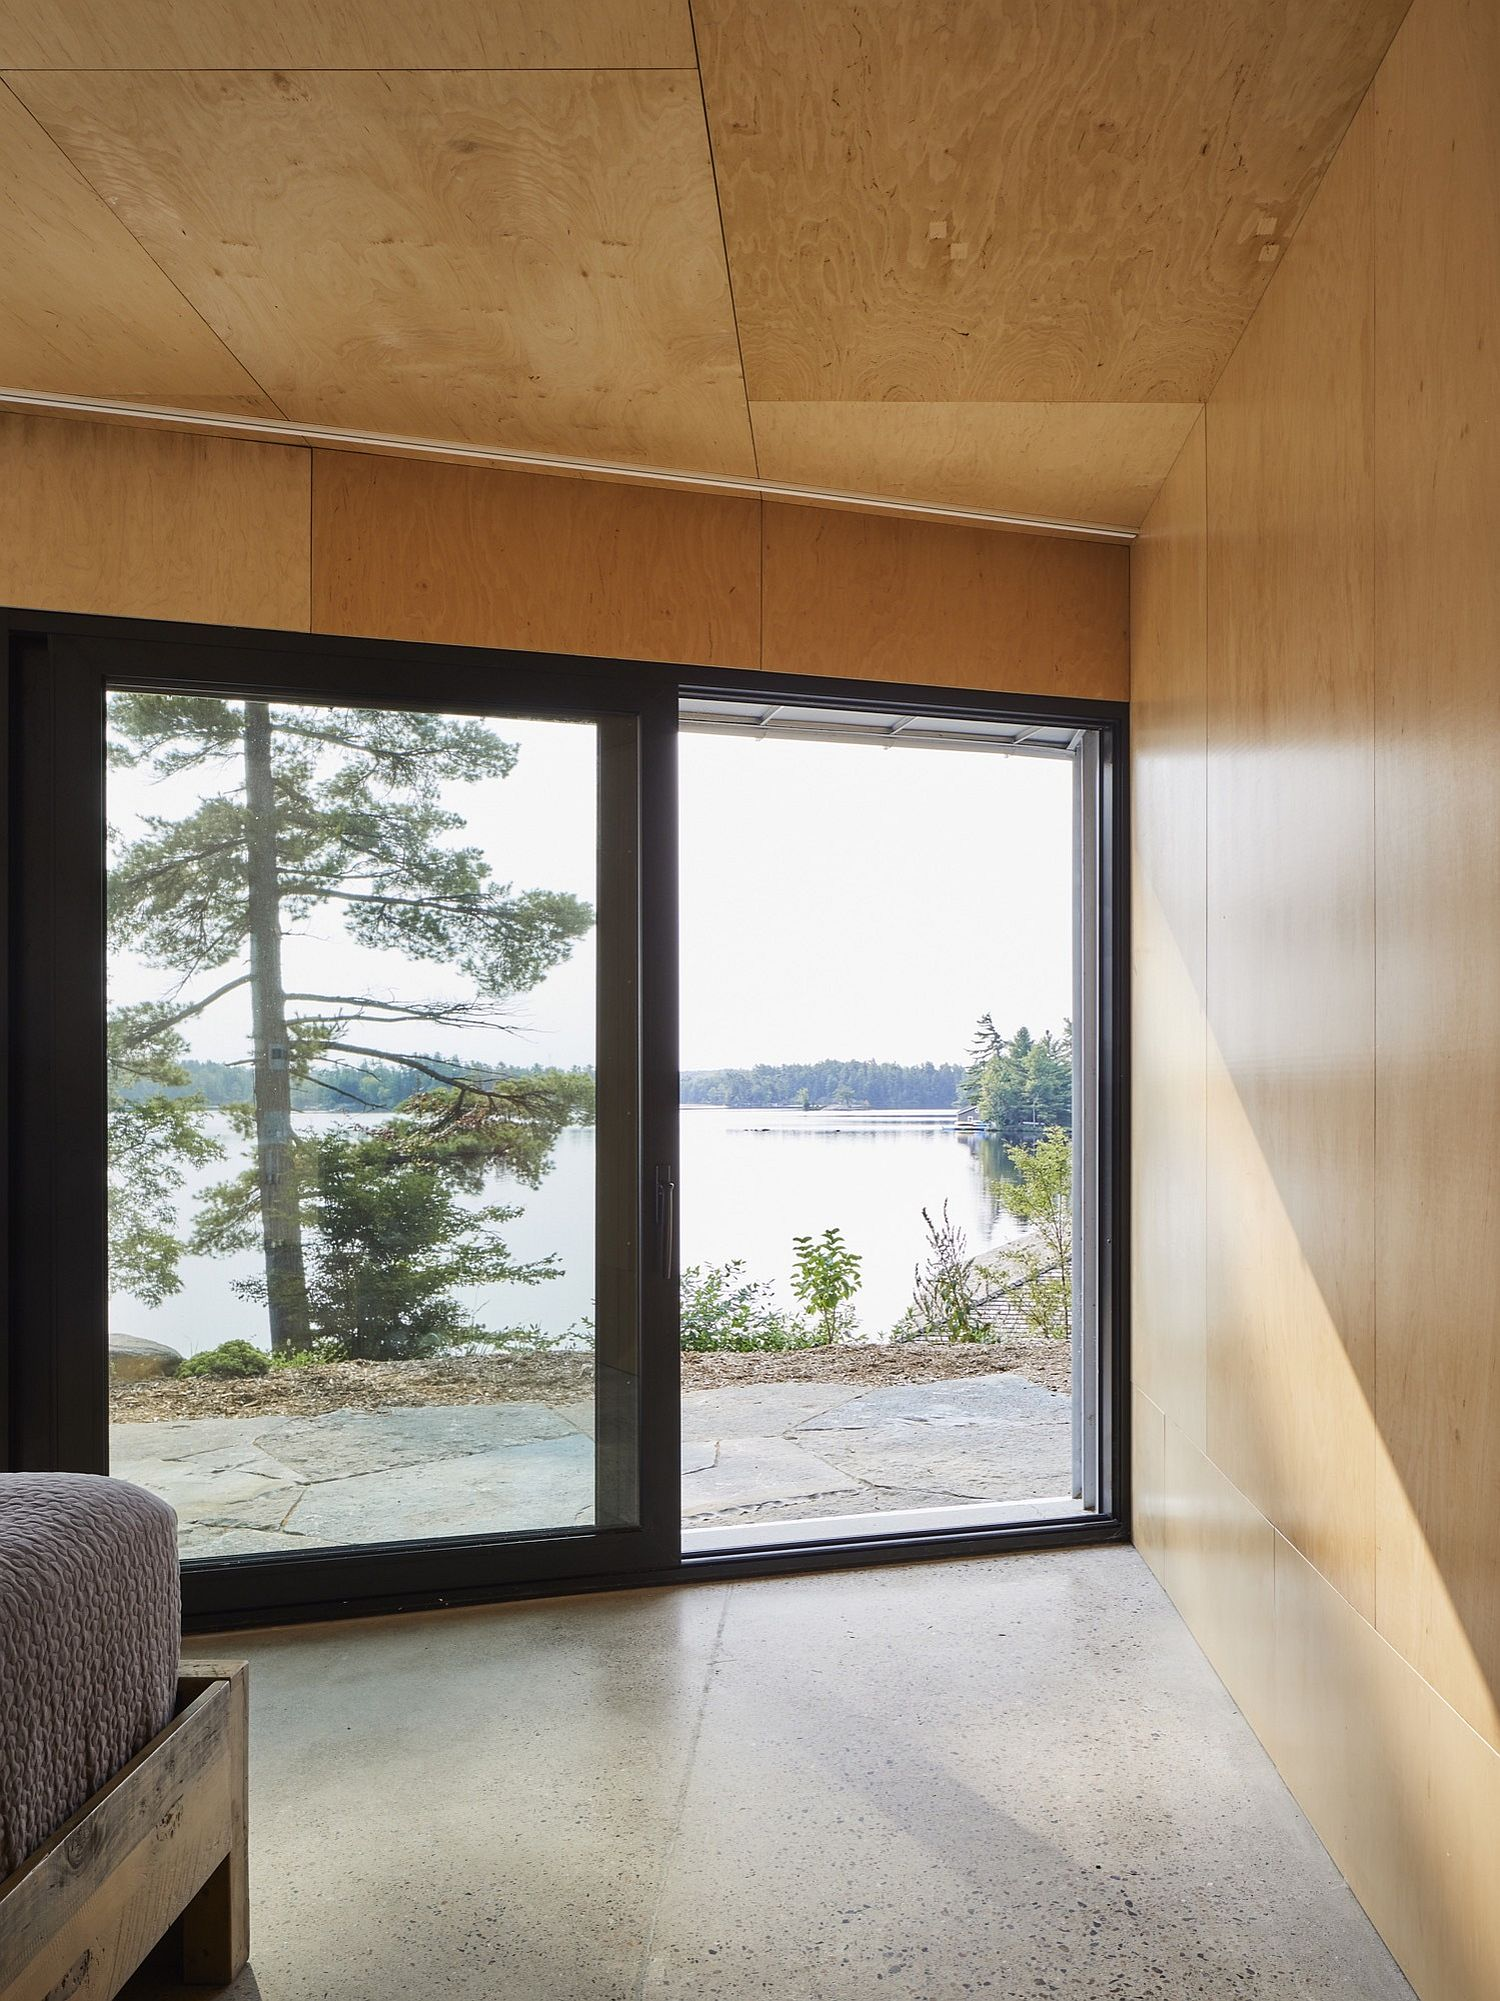 Large glass doors connect the bedroom with a view of the lake outside